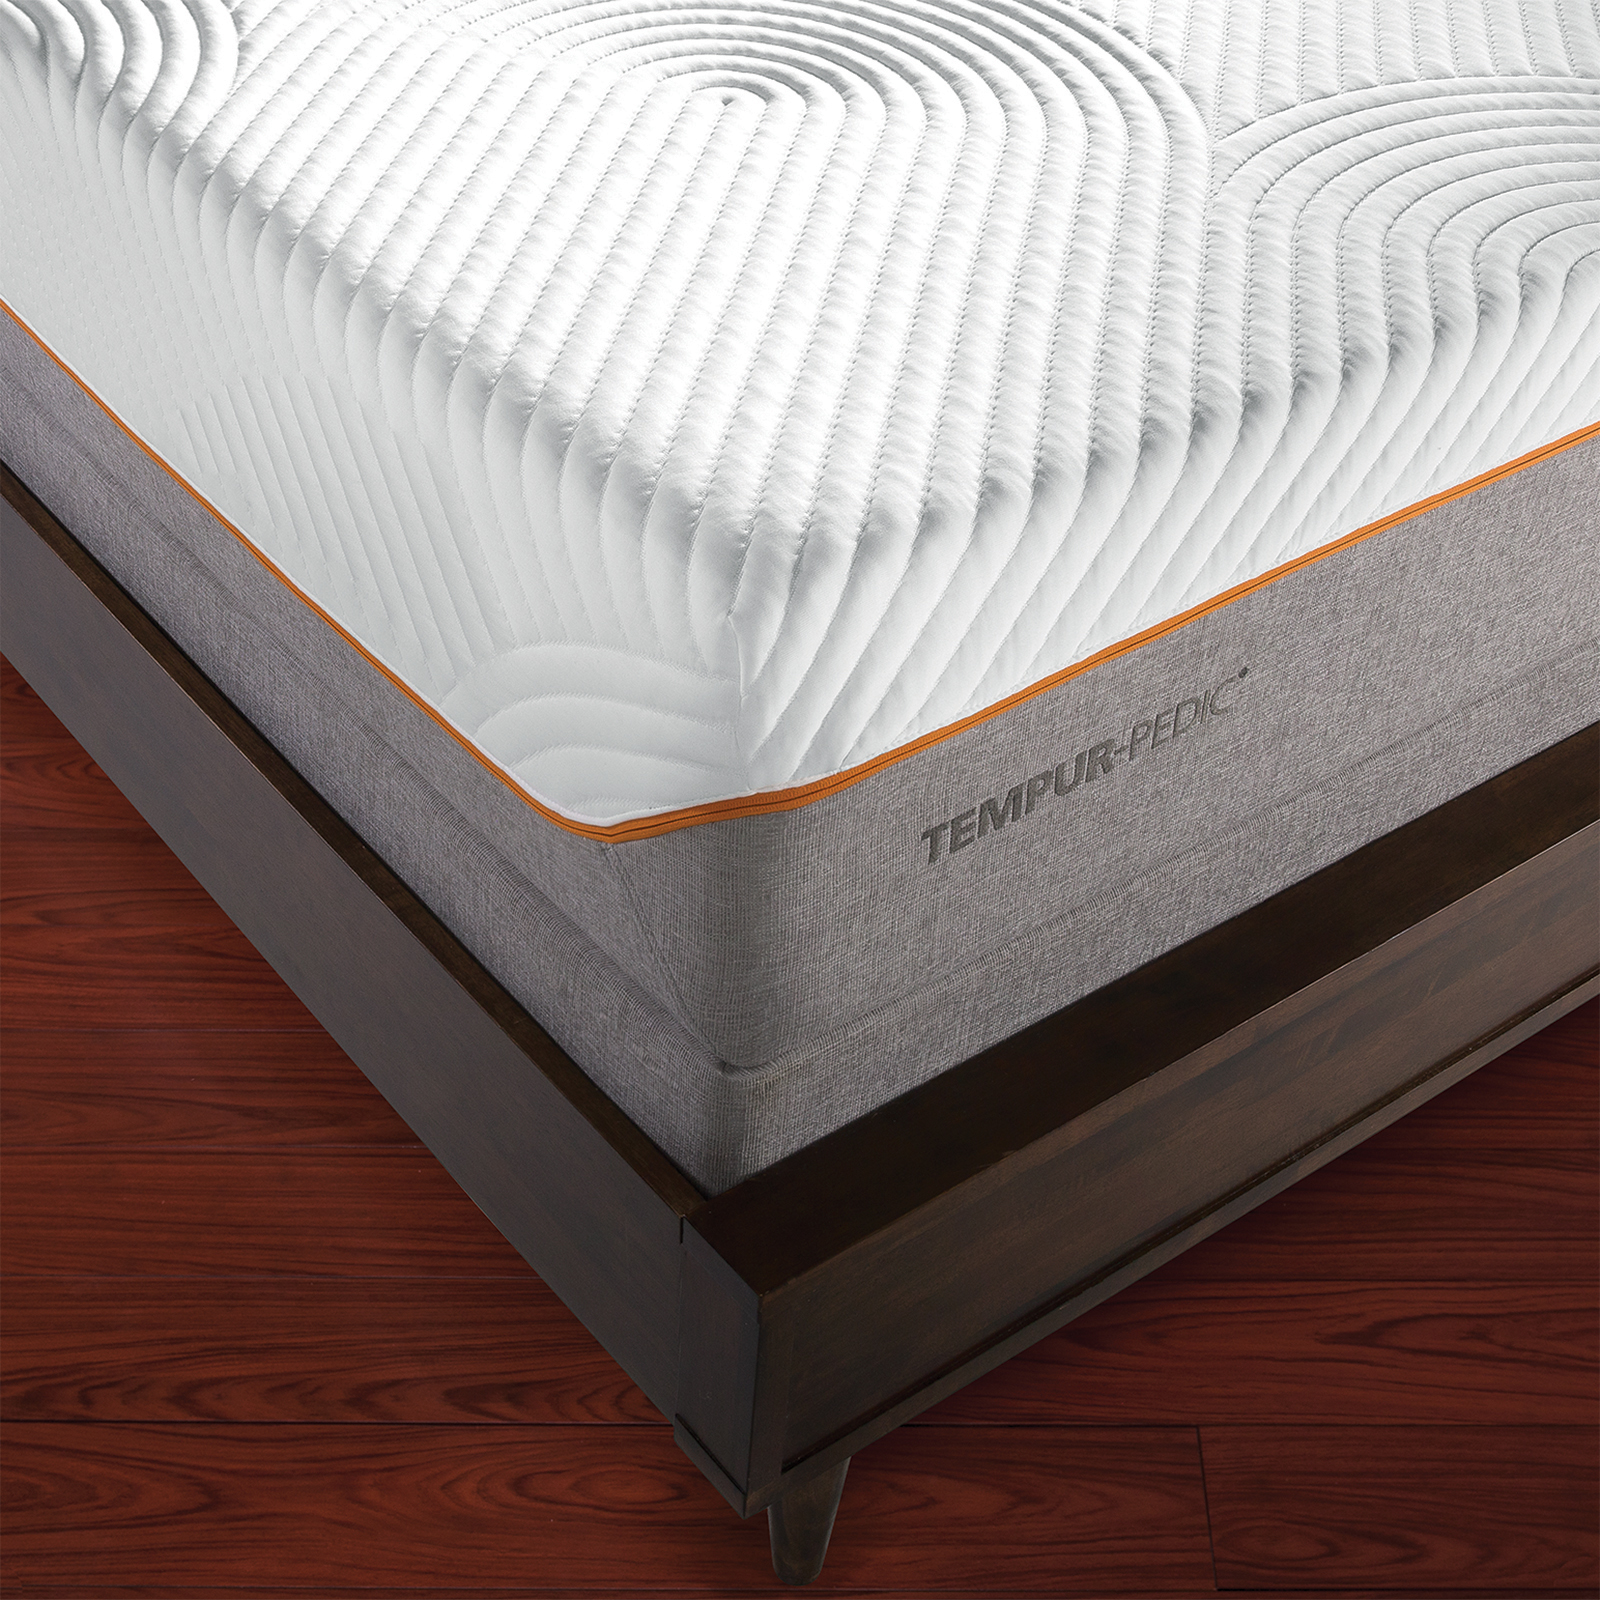 Tempurpedic Mattress King Size Tempur Pedic Tempur Contour Supreme King Mattress